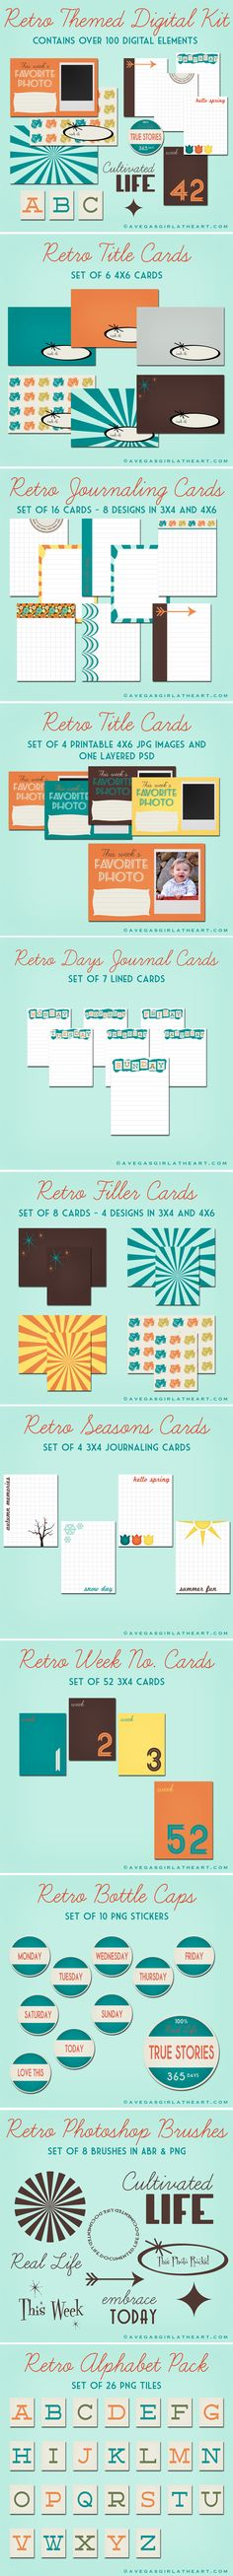 free Retro Kit (with over 100 pieces) from A Vegas Girl at Heart #ProjectLife #Scrapbooking #Cards http://www.avegasgirlatheart.com/2012/08/freebie-friday-retro-project-life-kit.html